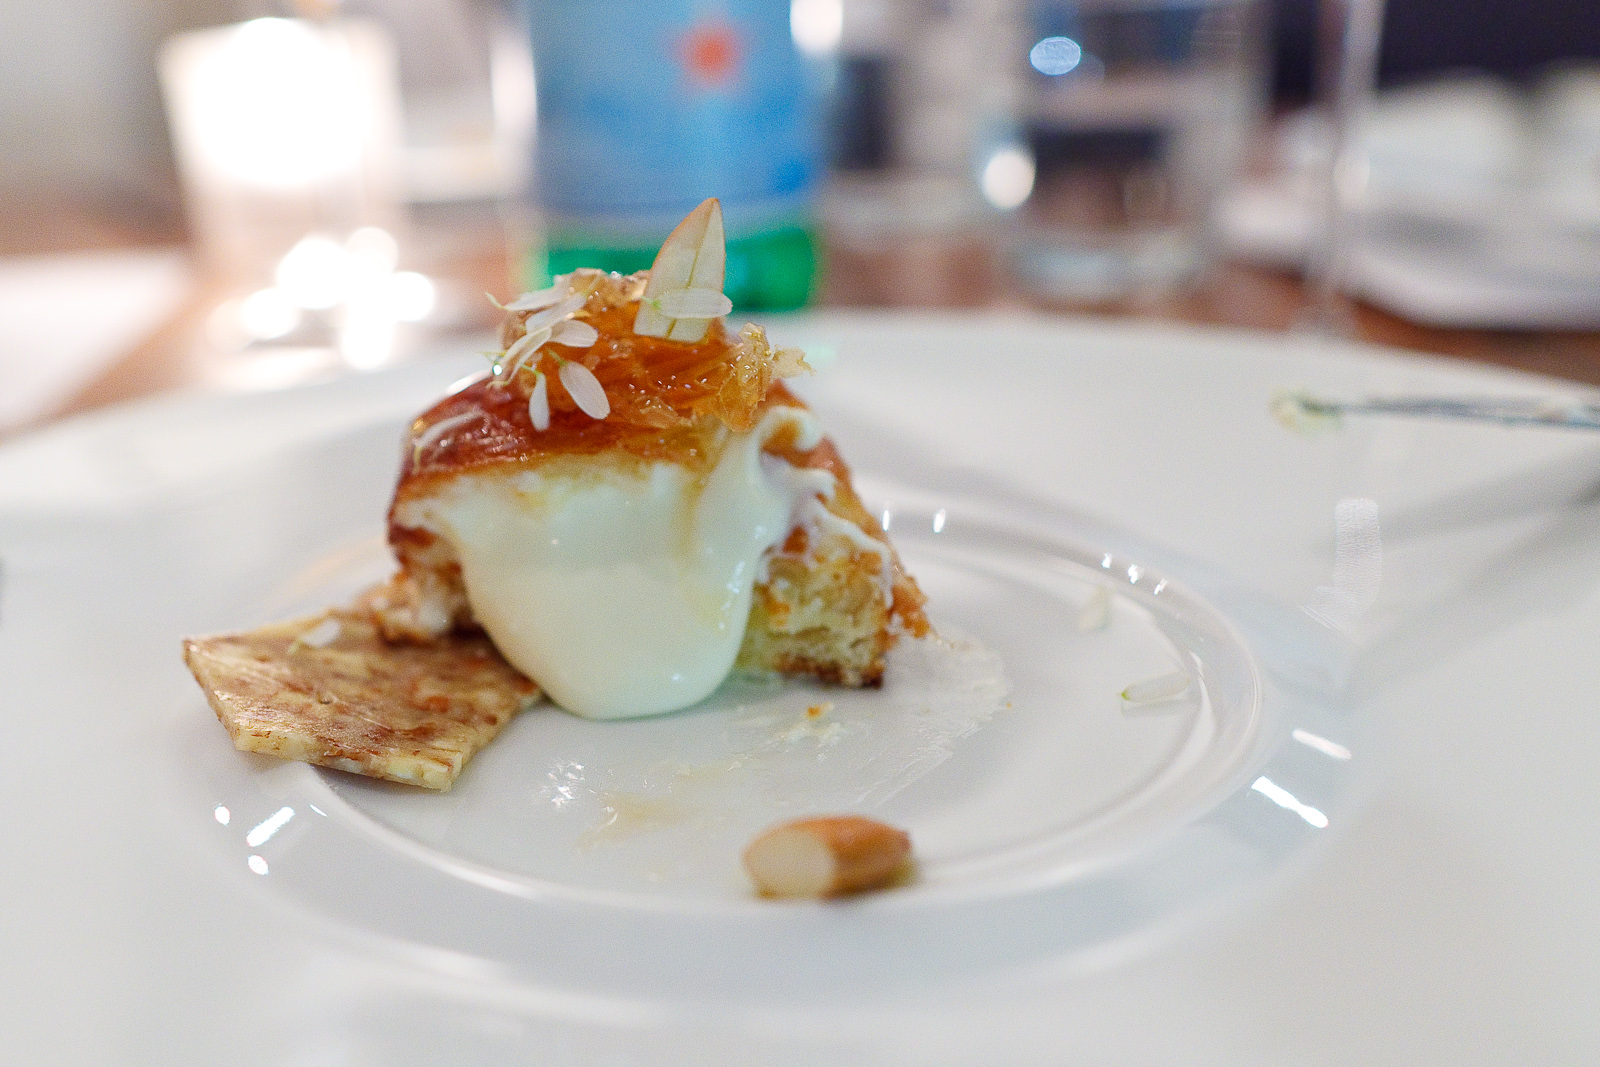 6th Course: Nuvola di percora - Warm nuvola di pecora piped into a freshly baked brioche with honeycomb